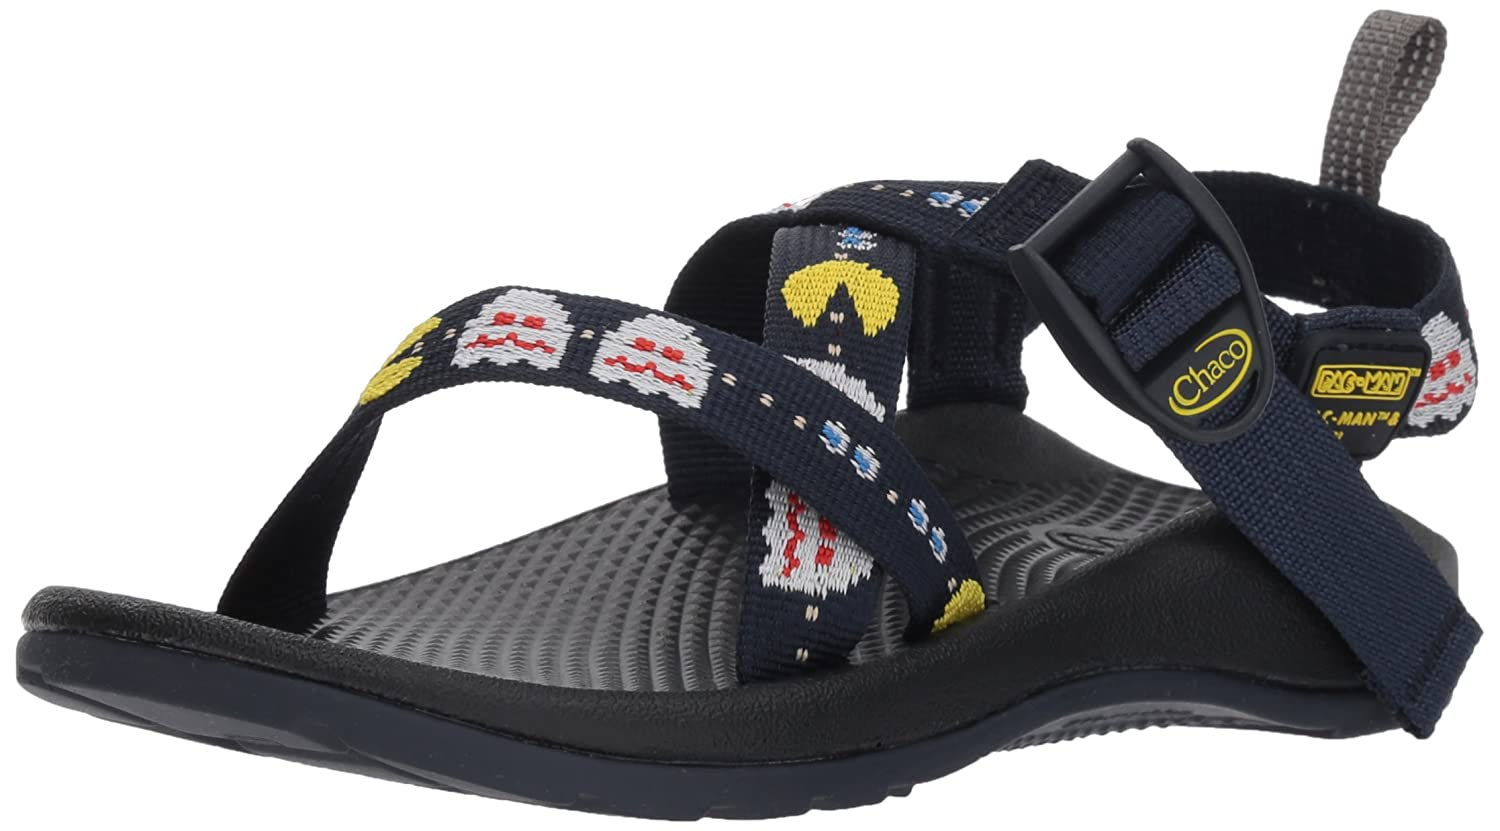 Chaco Kids Z1 Ecotread Size 1,3,4,5 US Pac-Man Scaredy Ghosts Sandals